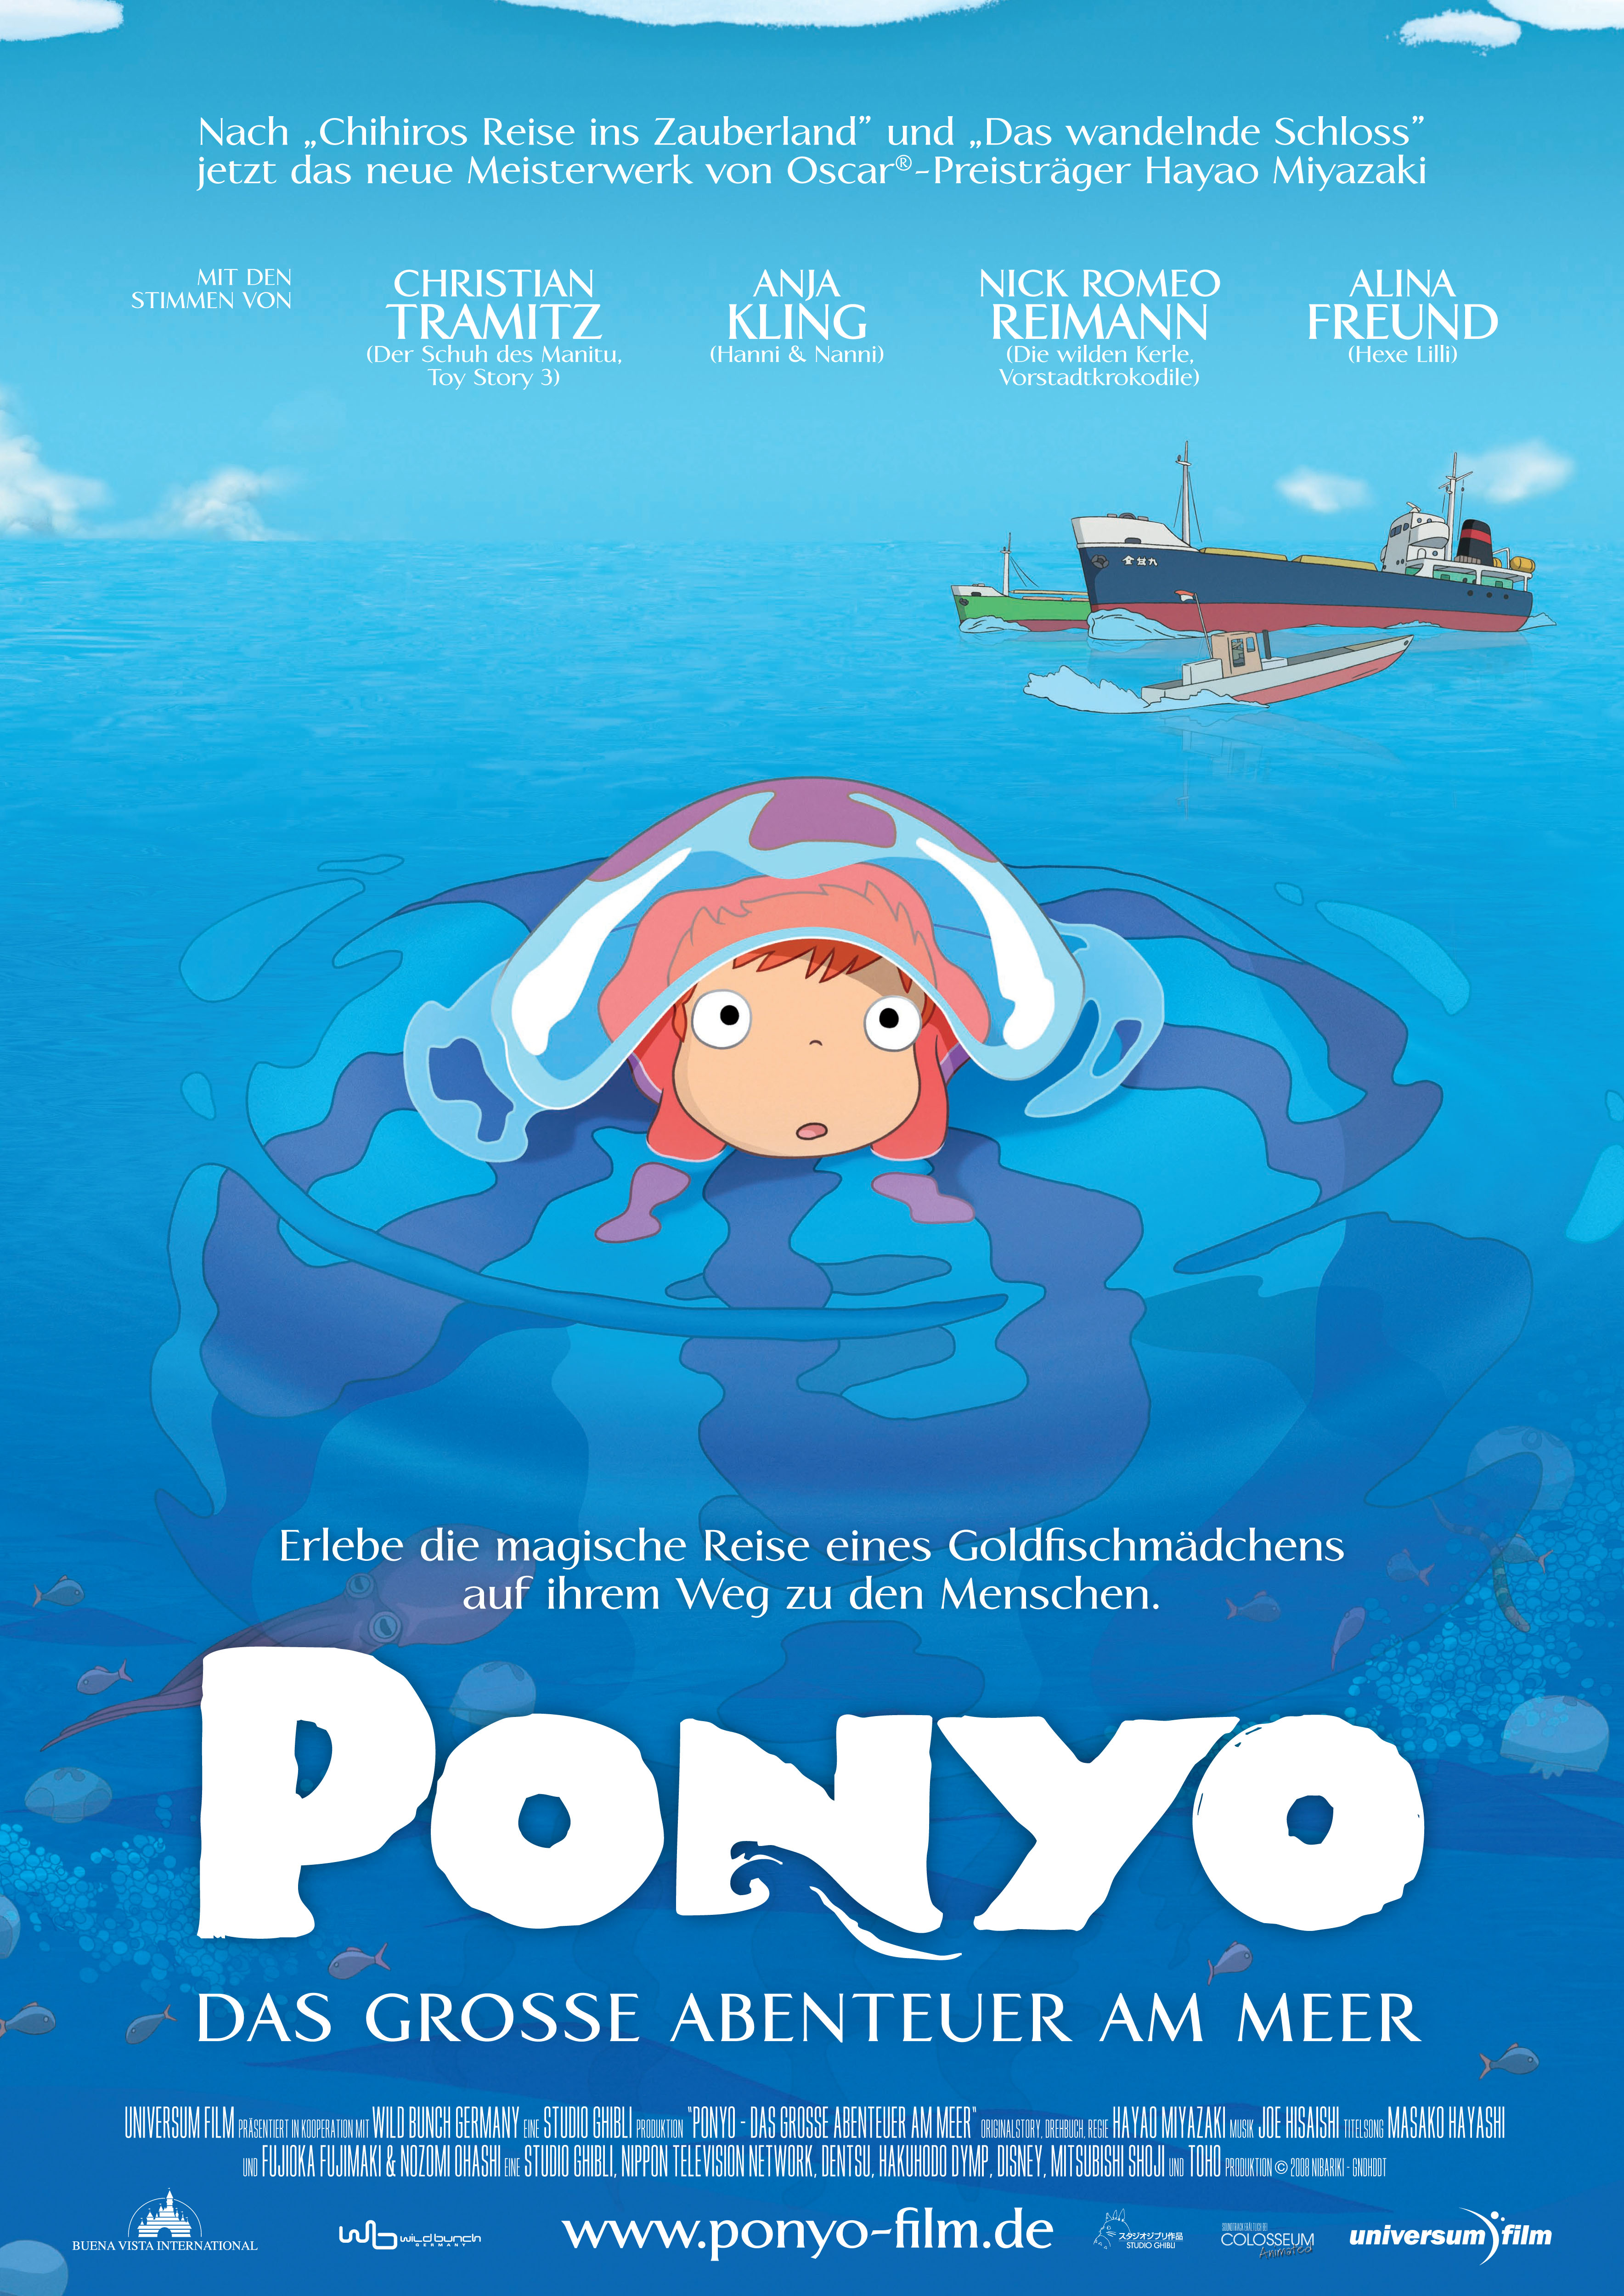 Ponyo Movie Quotes. QuotesGram